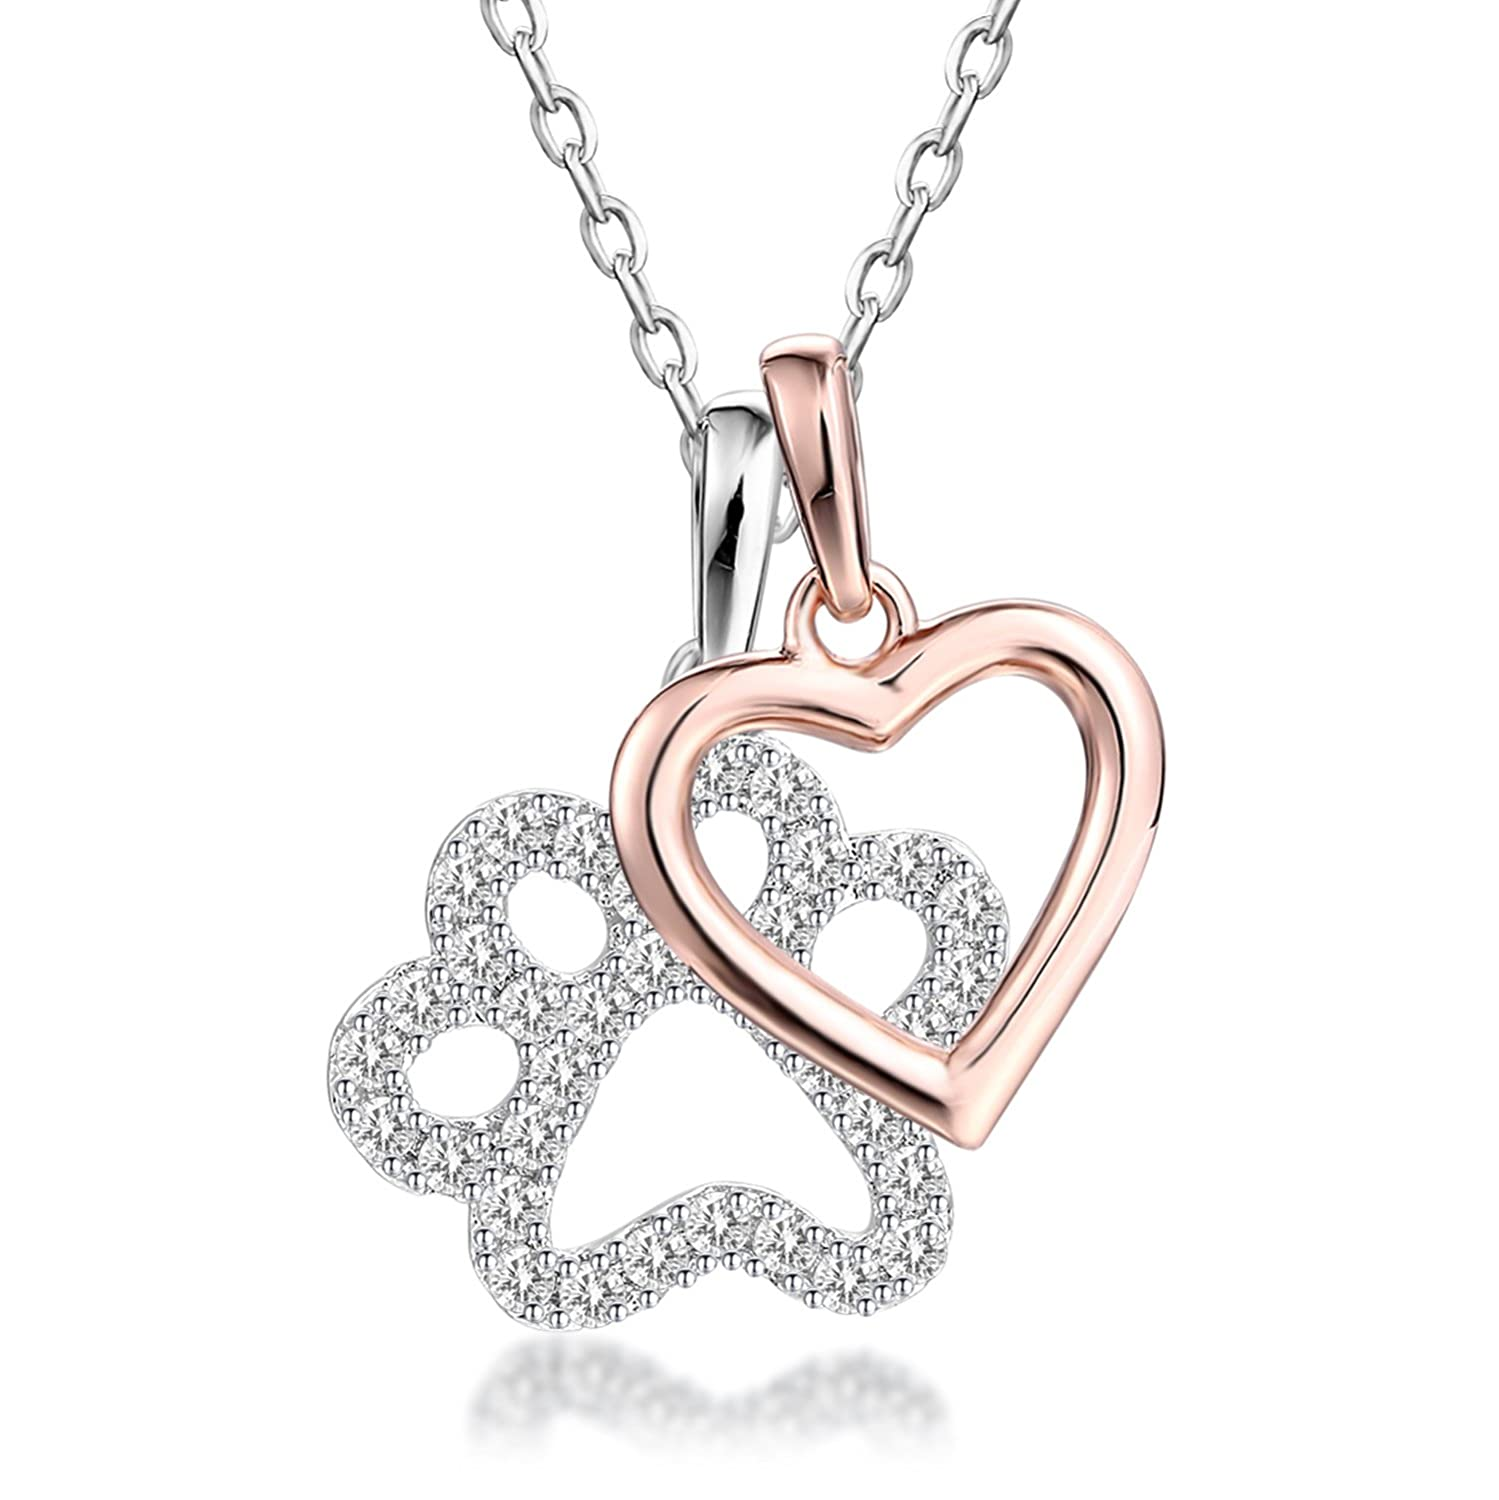 Women's Necklaces 925 Sterling Silver Infinity Hearts Pet Paw Print Pendant Necklace Best Gifts for Women with Gift Packed QDo96nChc